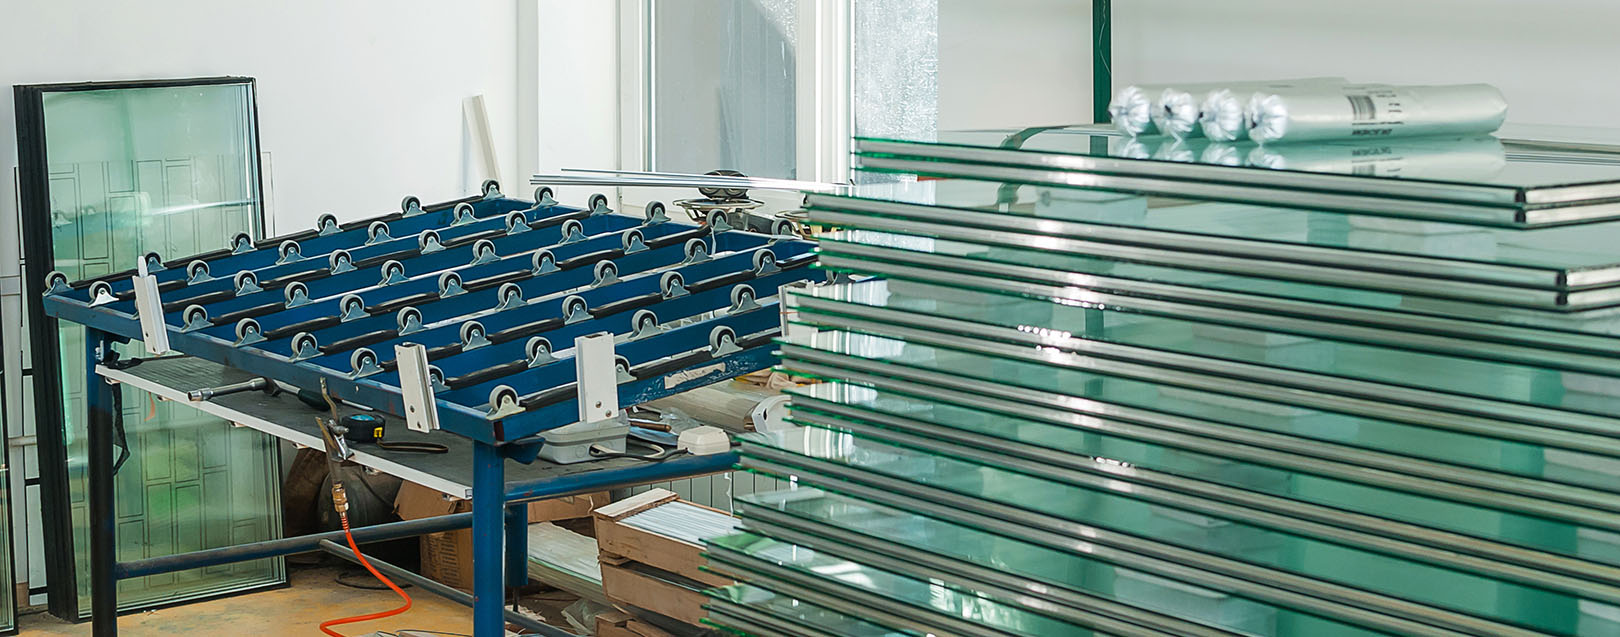 DGAD recommends anti-dumping duty on clear float glass from Iran